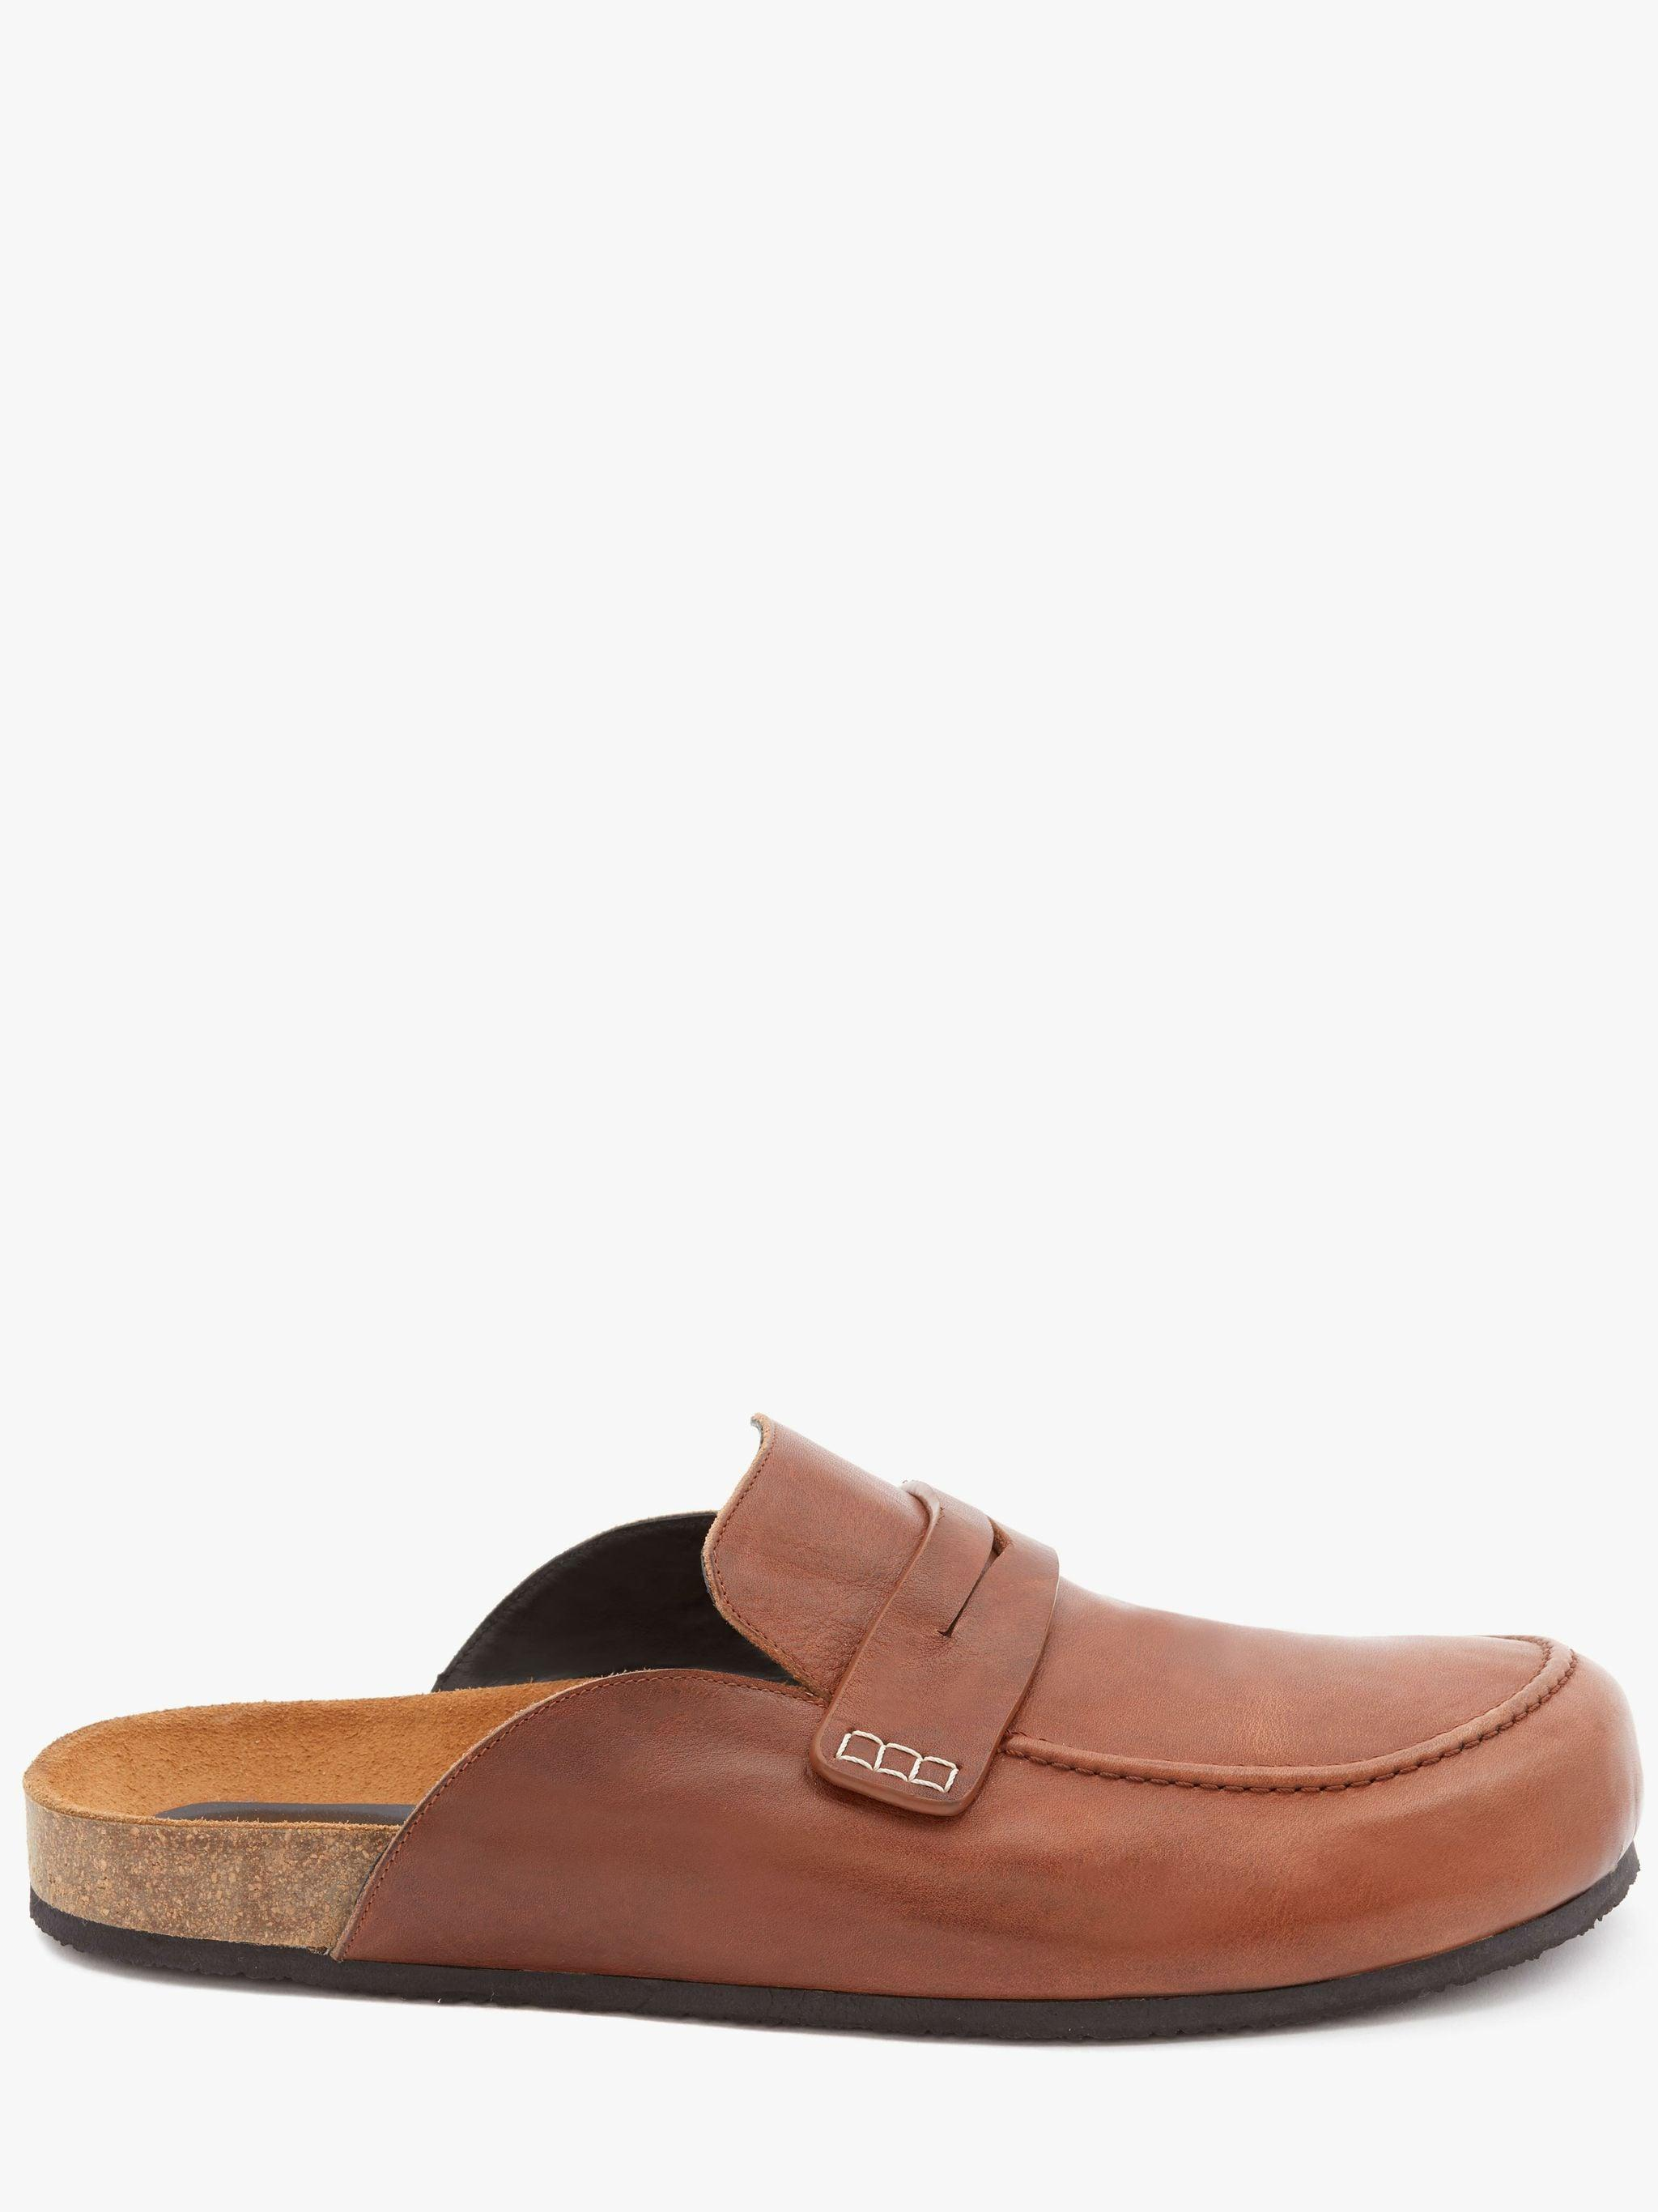 LEATHER LOAFER MULES